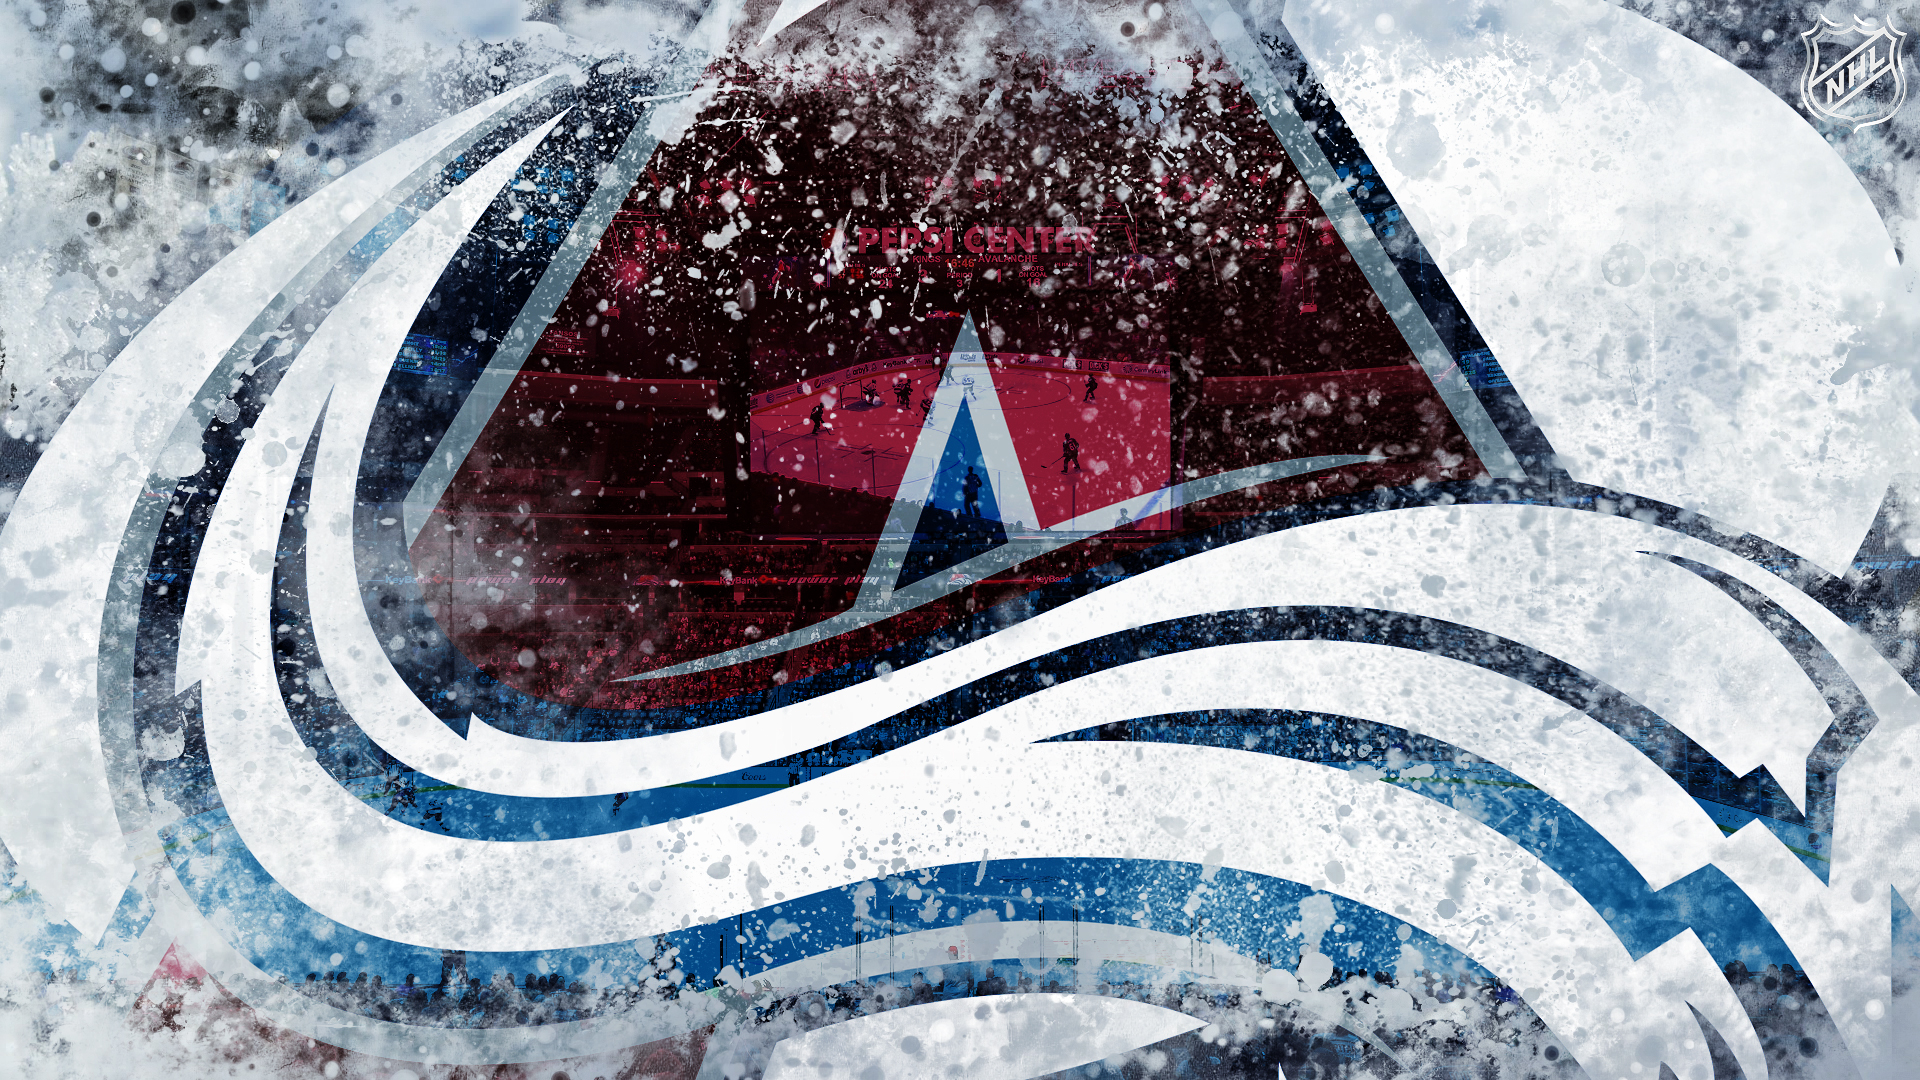 1920x1080 - Colorado Avalanche Wallpapers 22